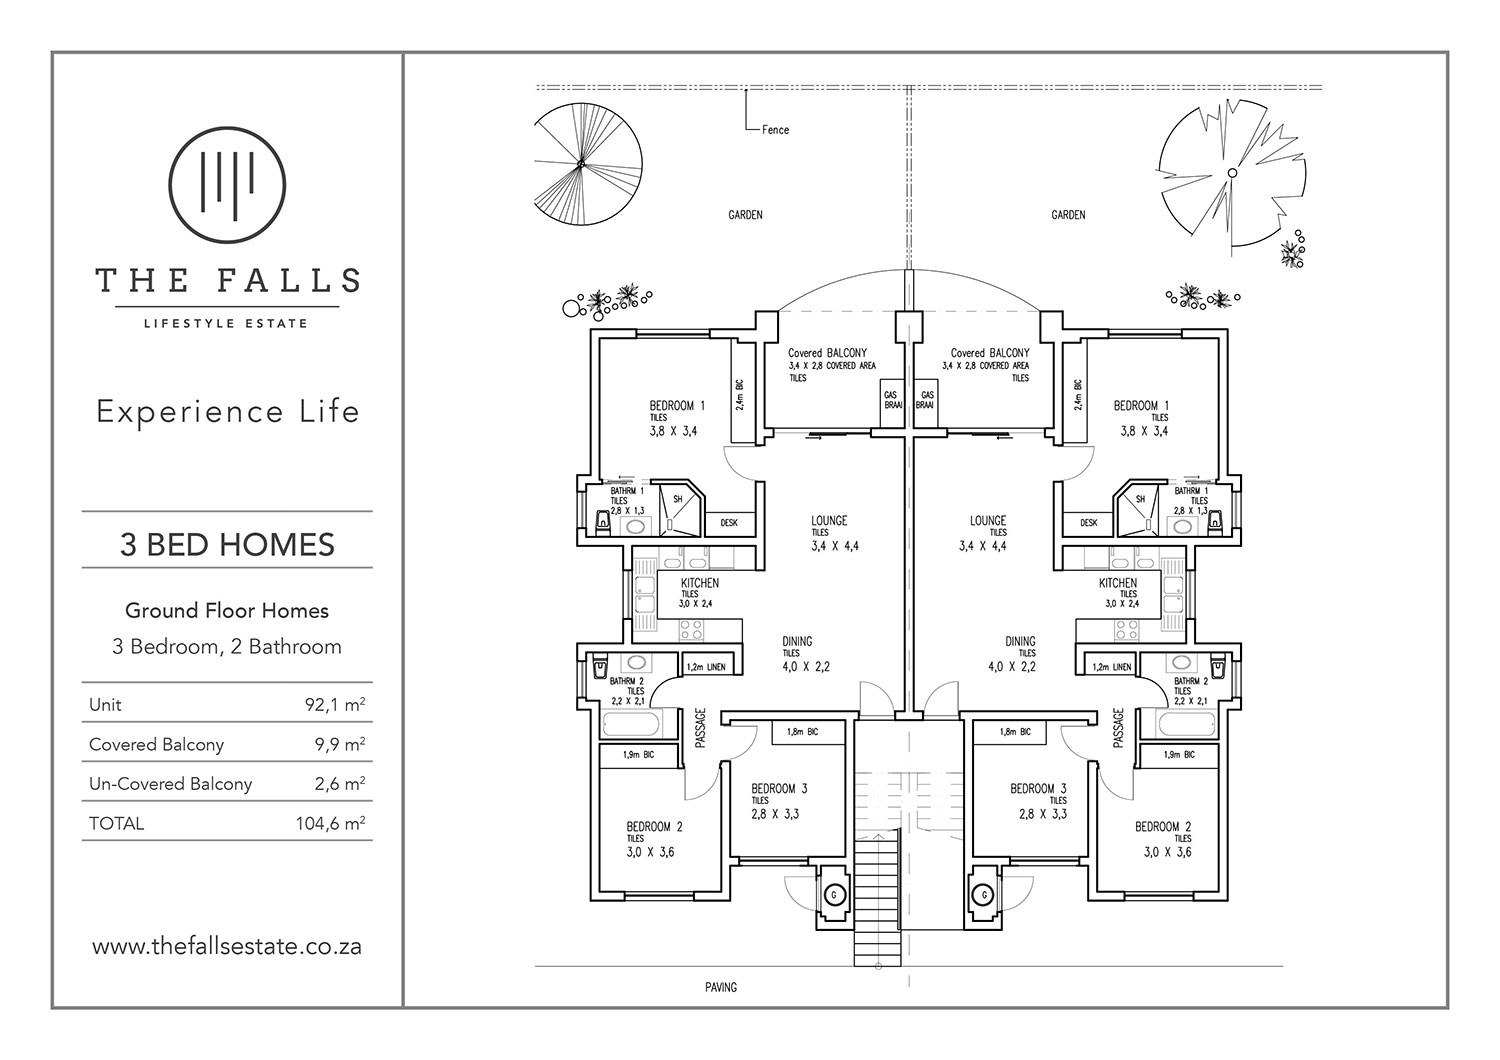 The Fall Lifestyle Estate - 3 Bed Ground Floor Home for sale - floorplans